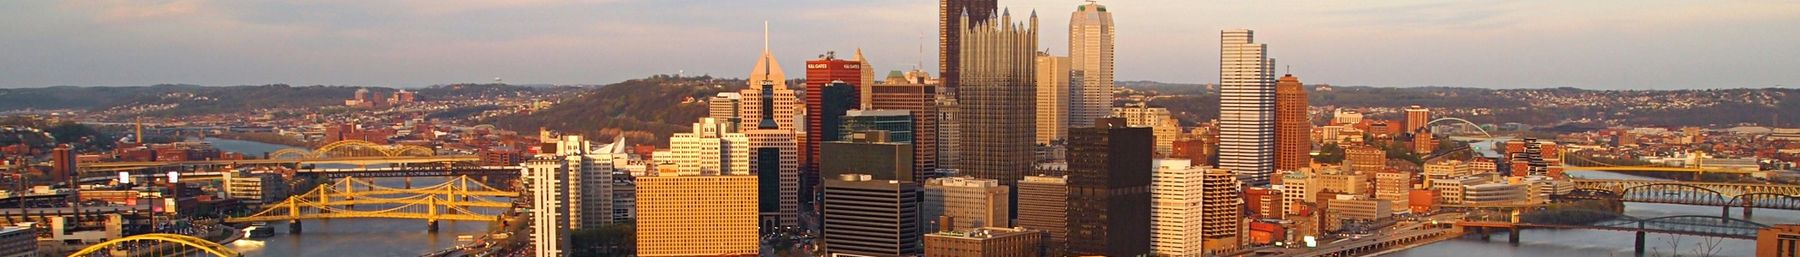 Pittsburgh skyline banner.jpg